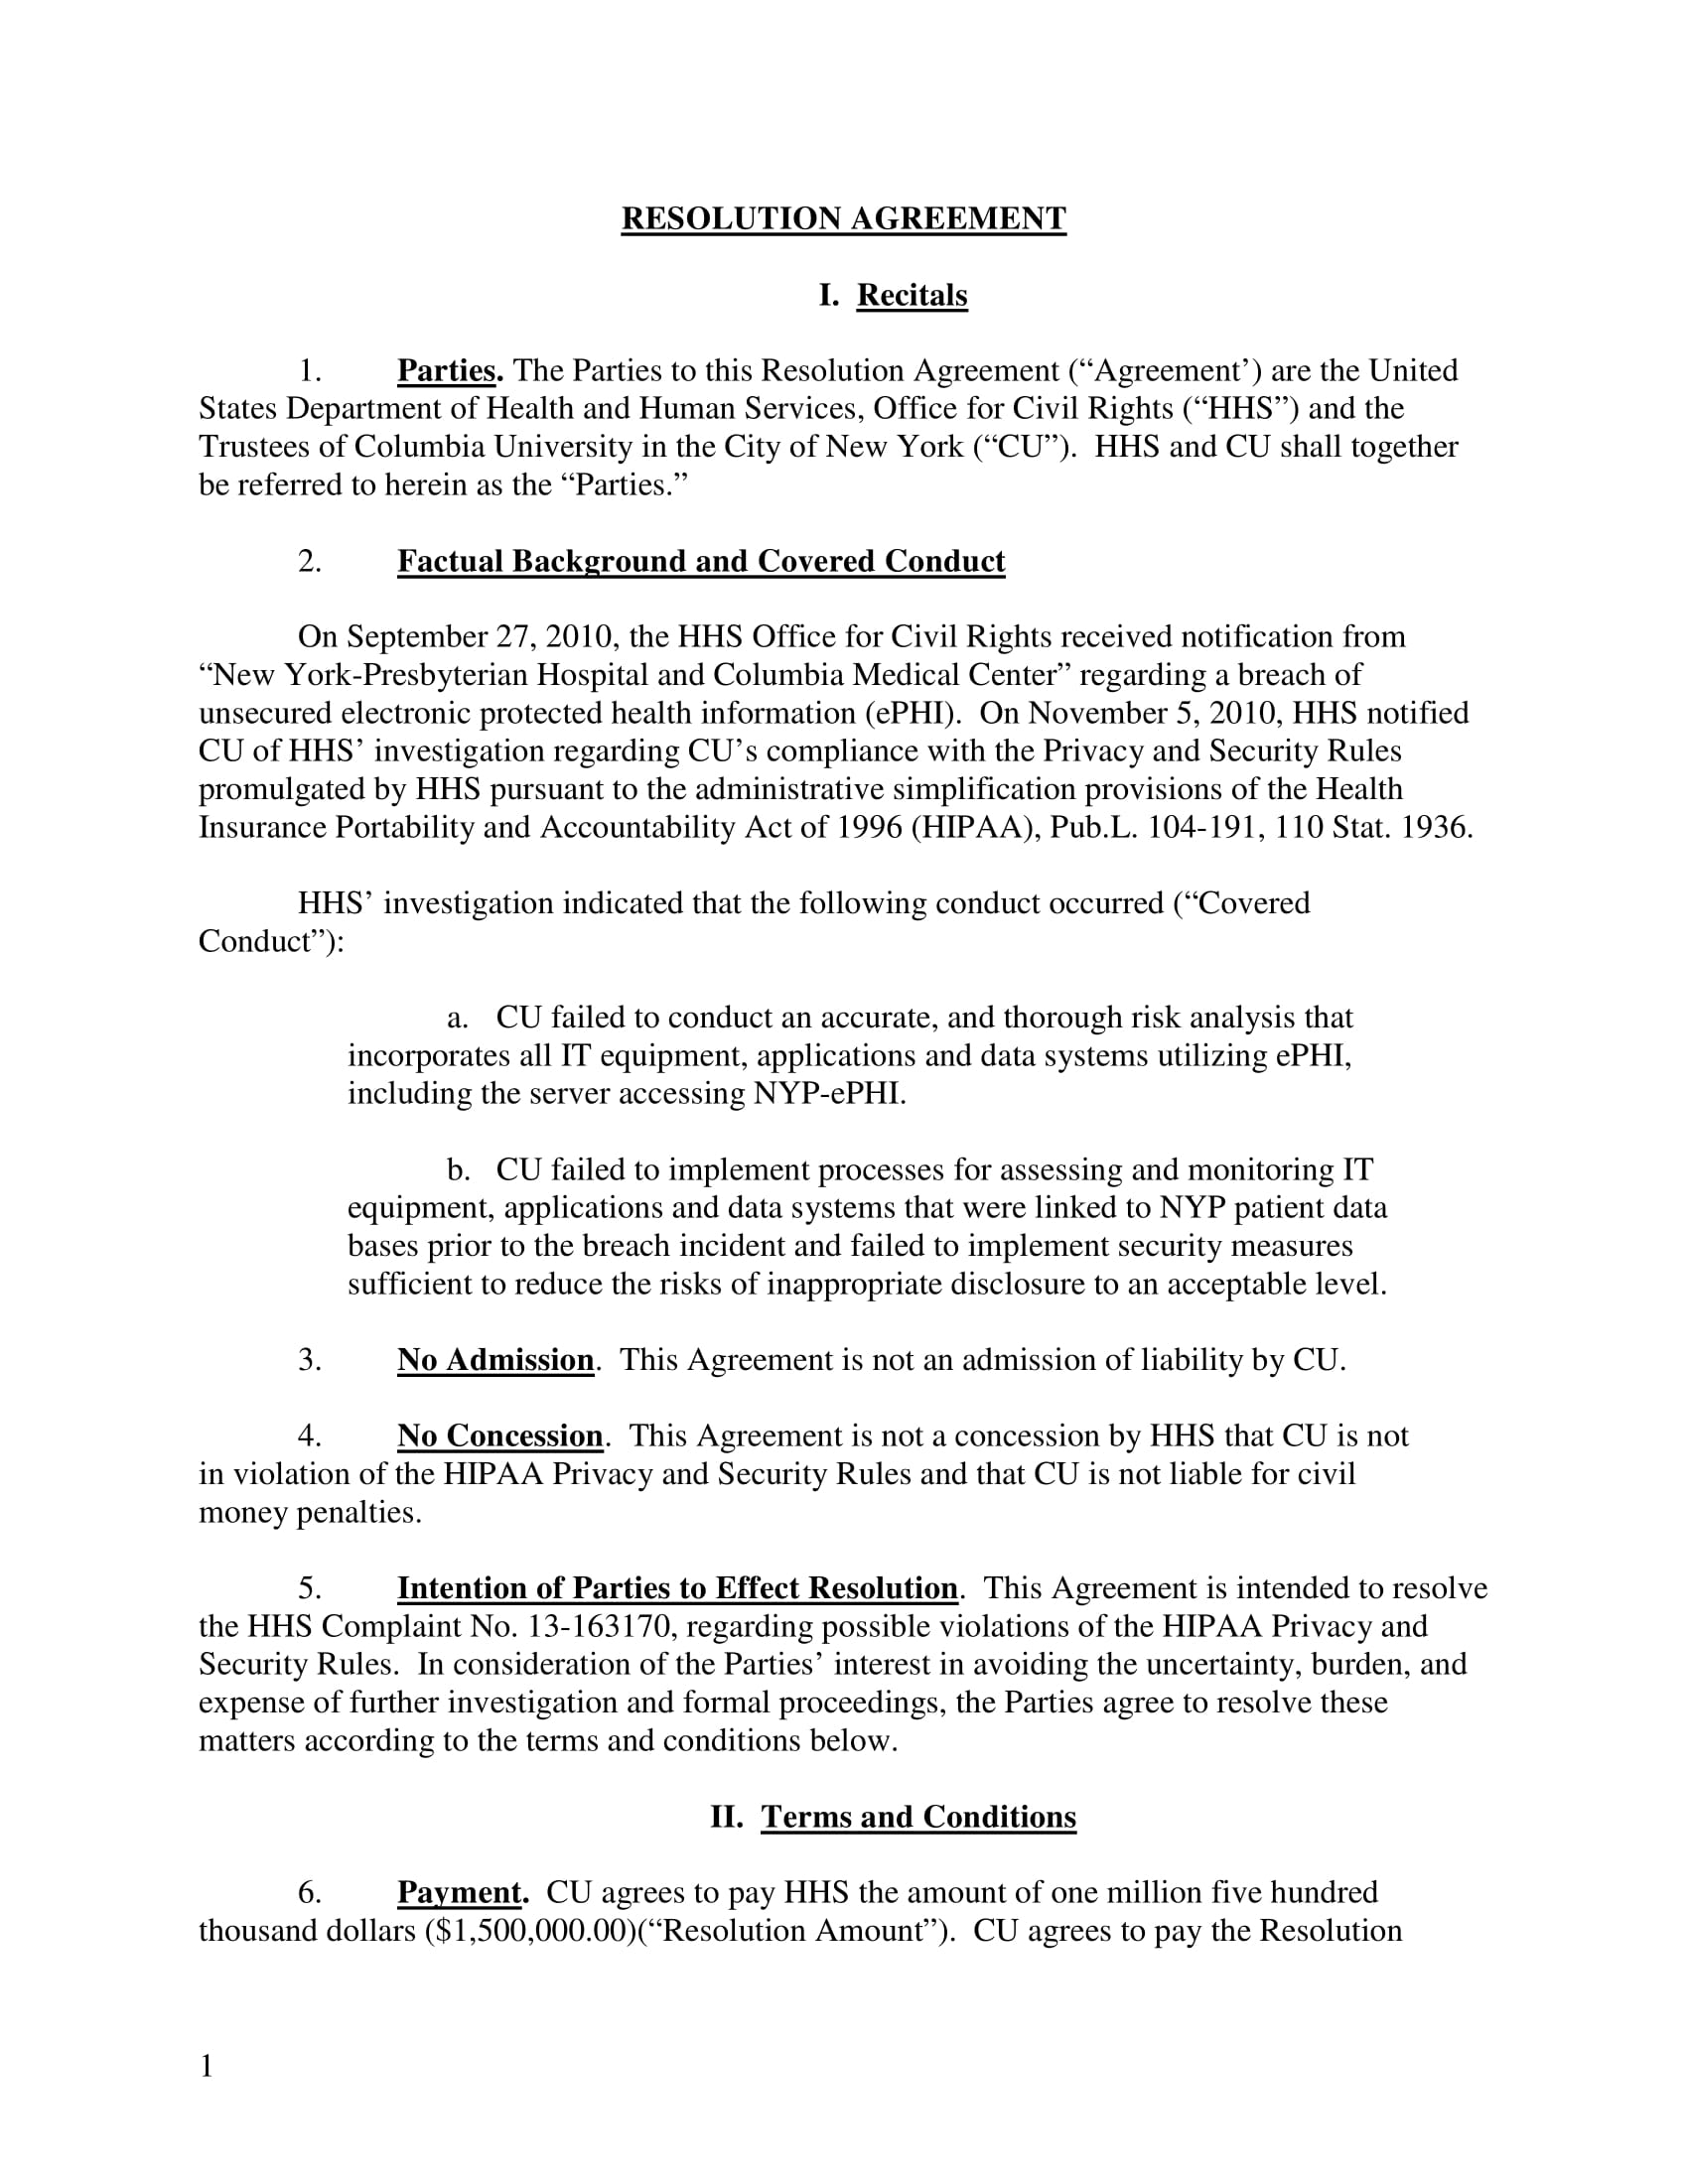 columbia university resolution agreement 01